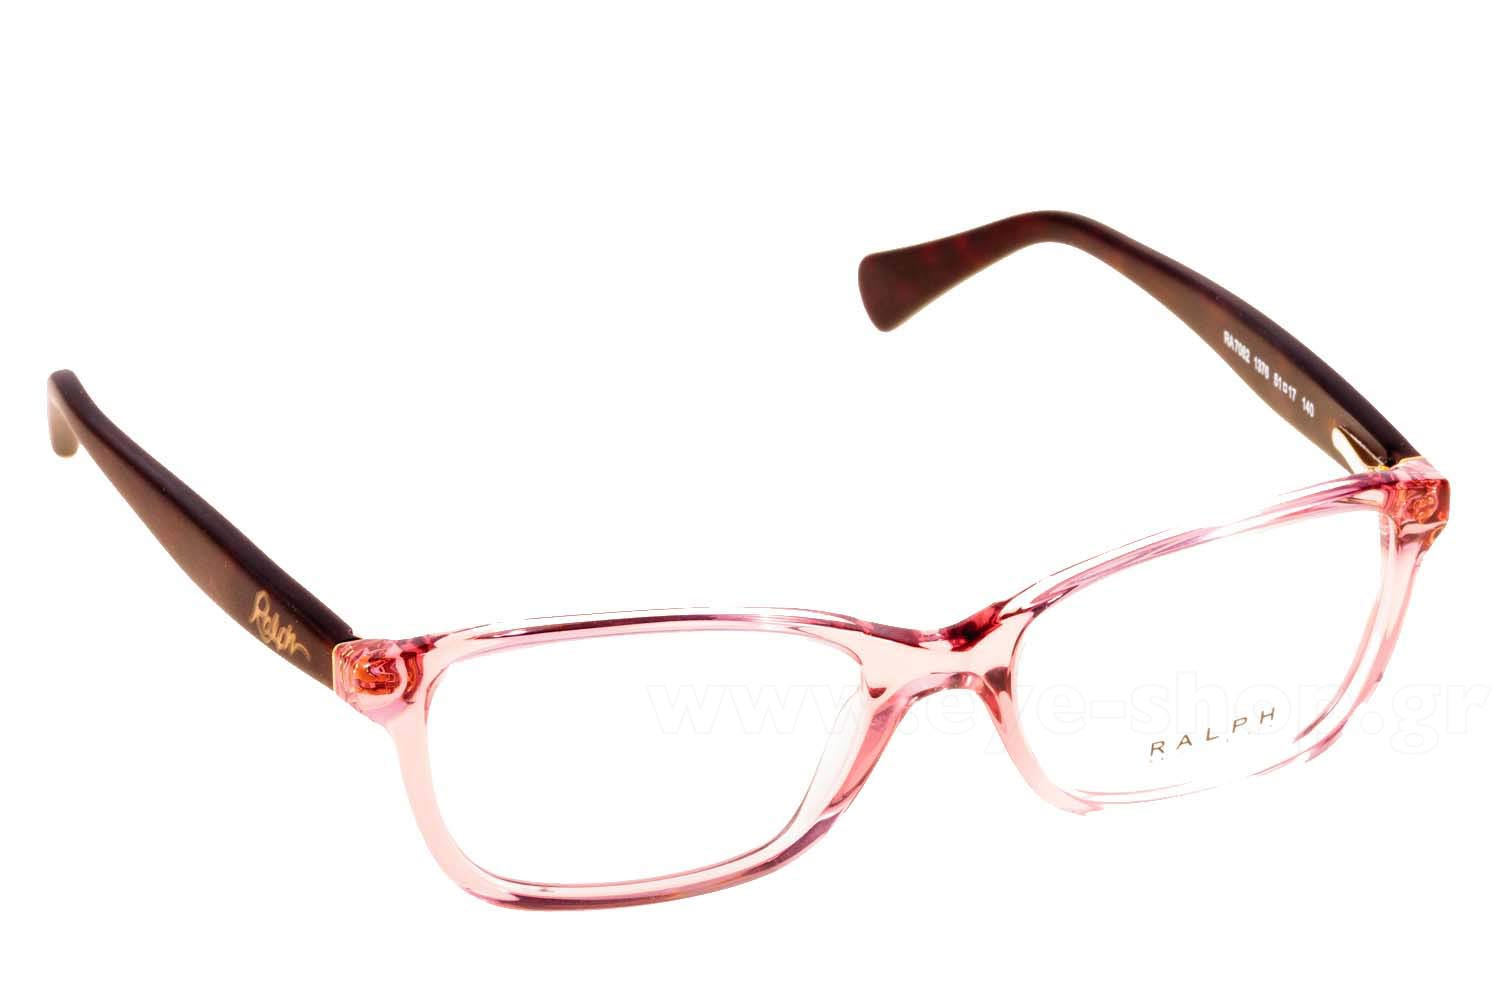 superior quality hot new products new lifestyle EYEWEAR RALPH BY RALPH LAUREN 7062 1376 51Ø Women 2019 ver1.